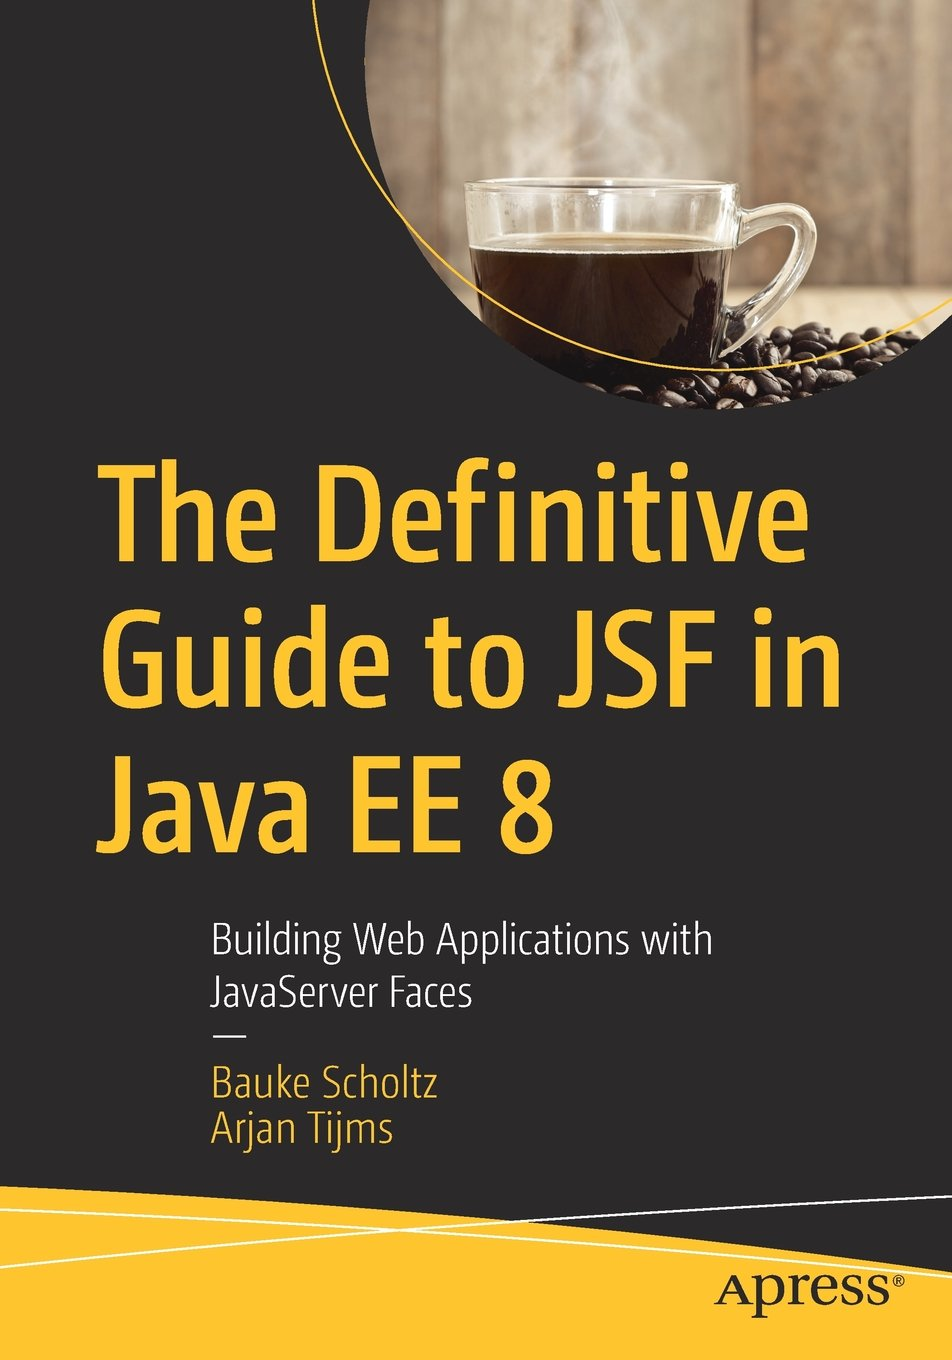 The Definitive Guide to JSF in Java EE 8: Building Web